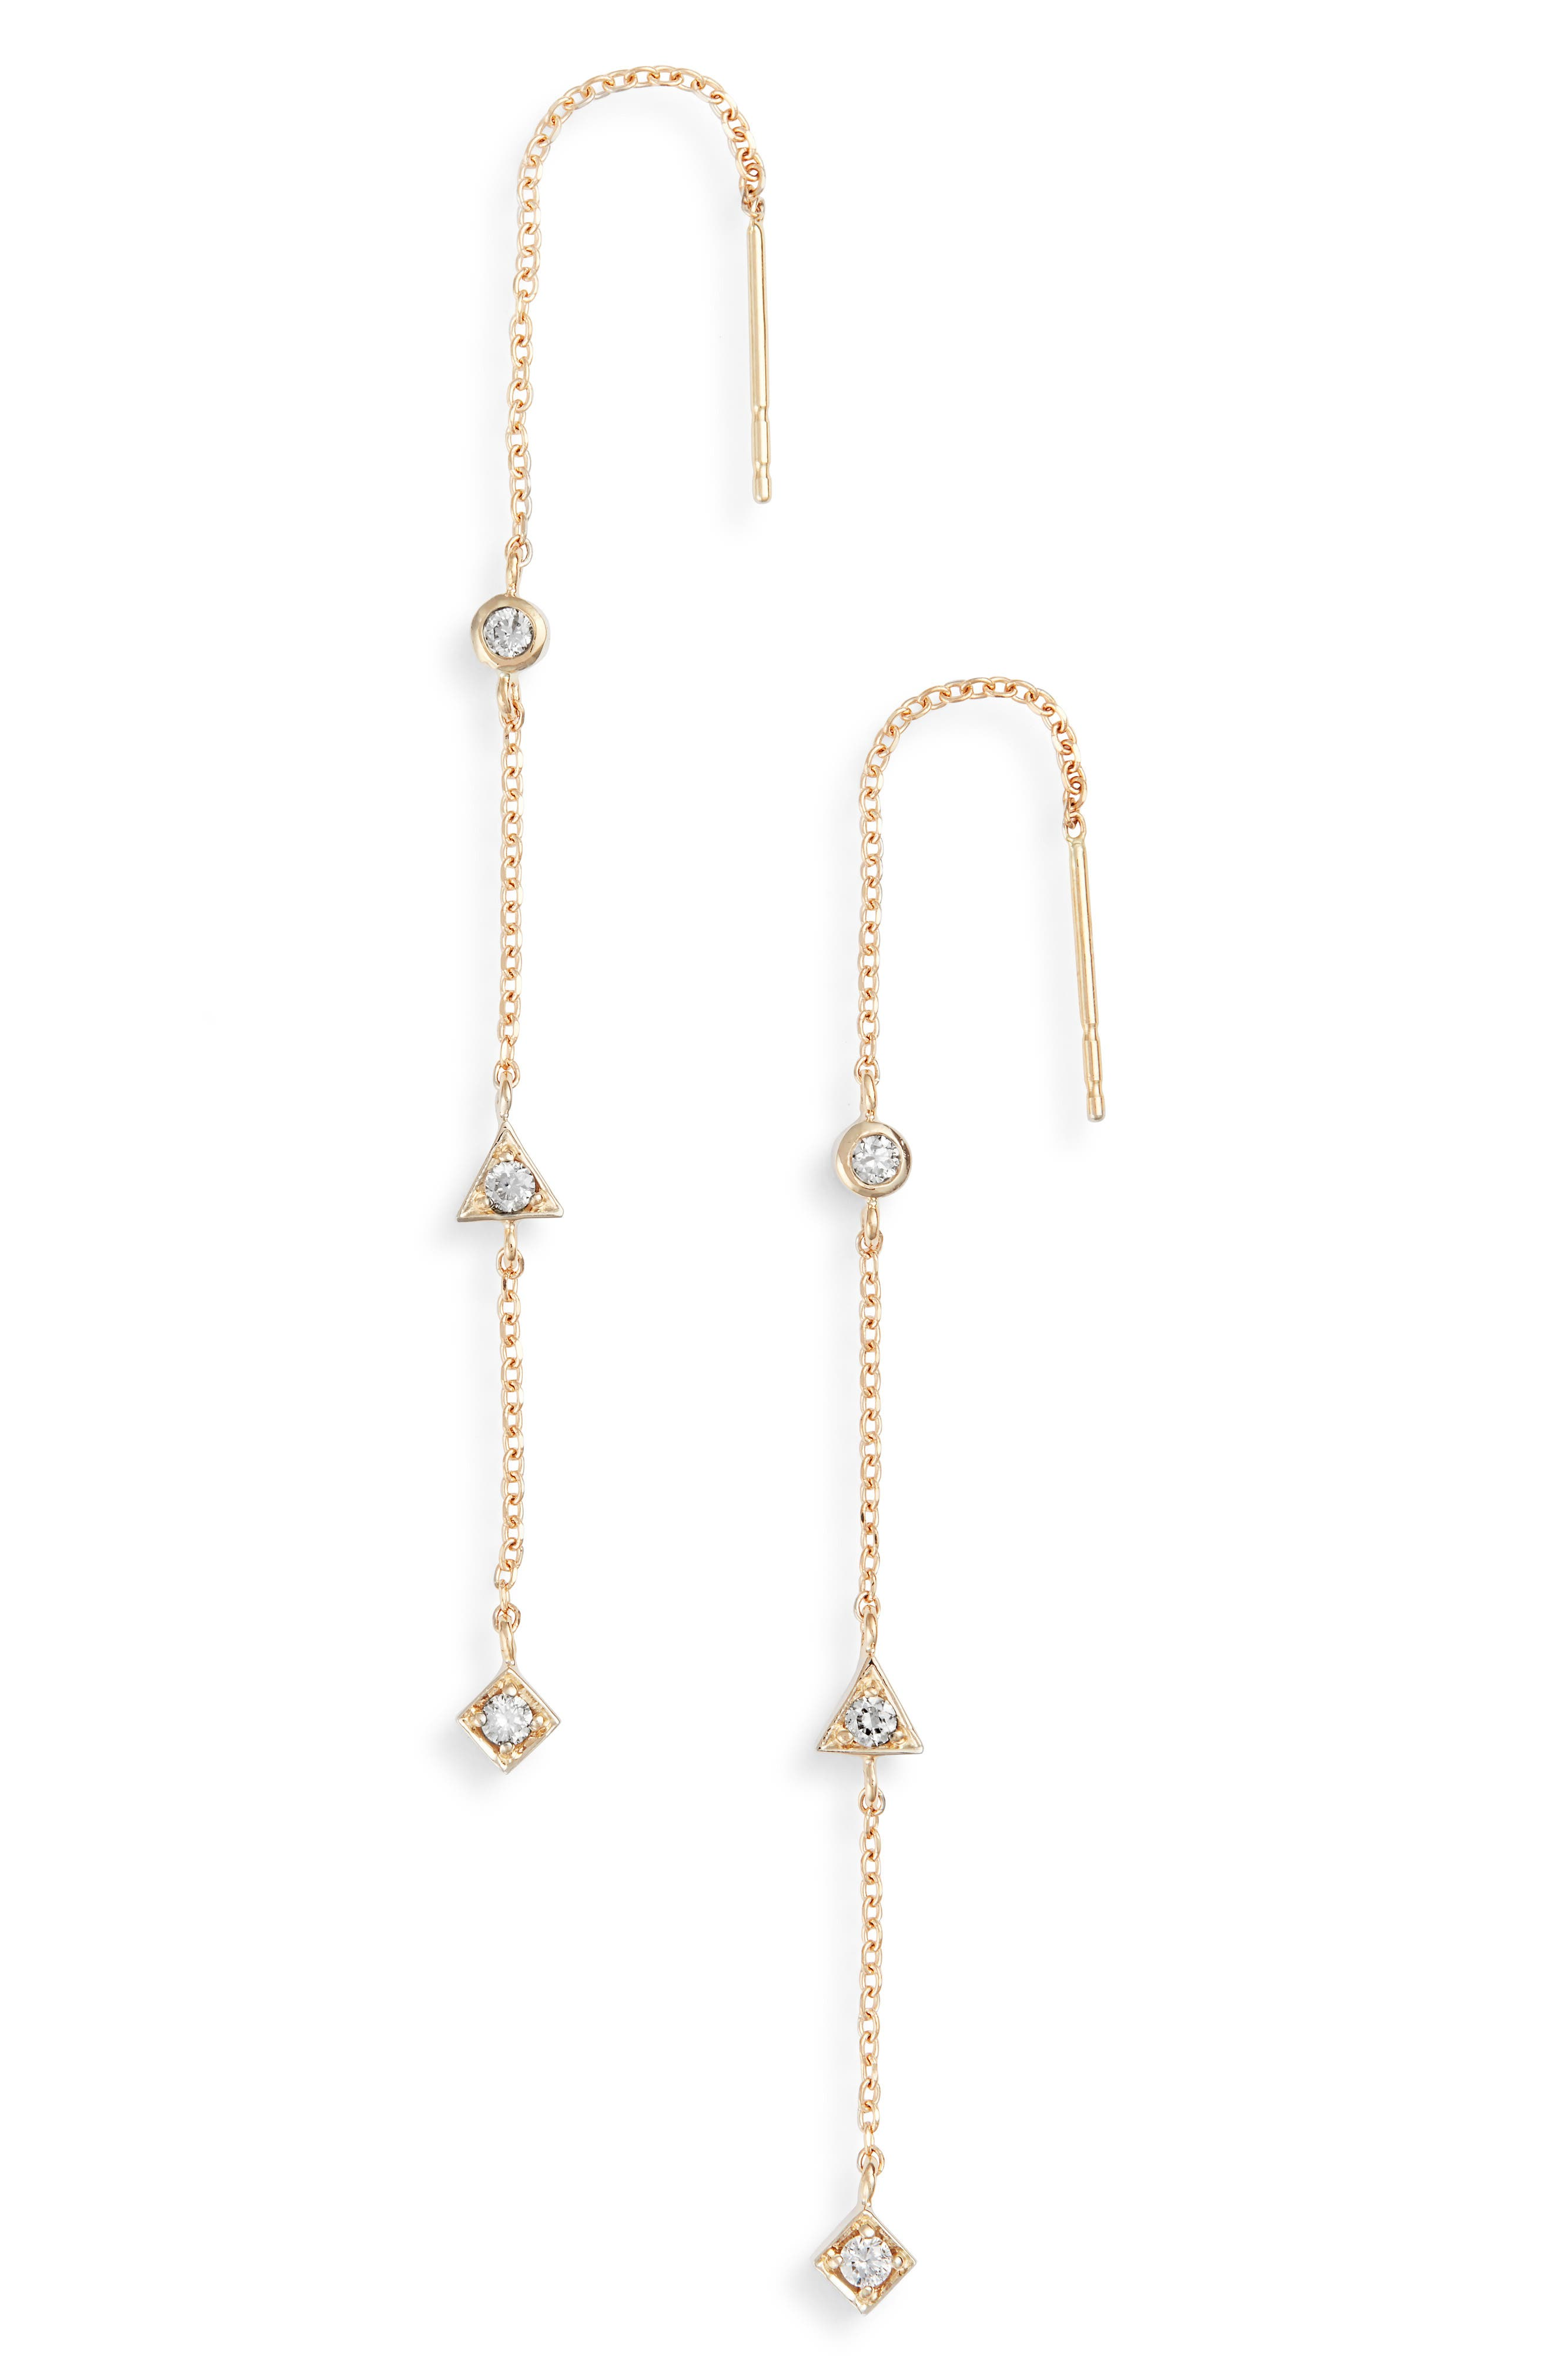 Cleo Diamond Linear Earrings,                         Main,                         color, Gold